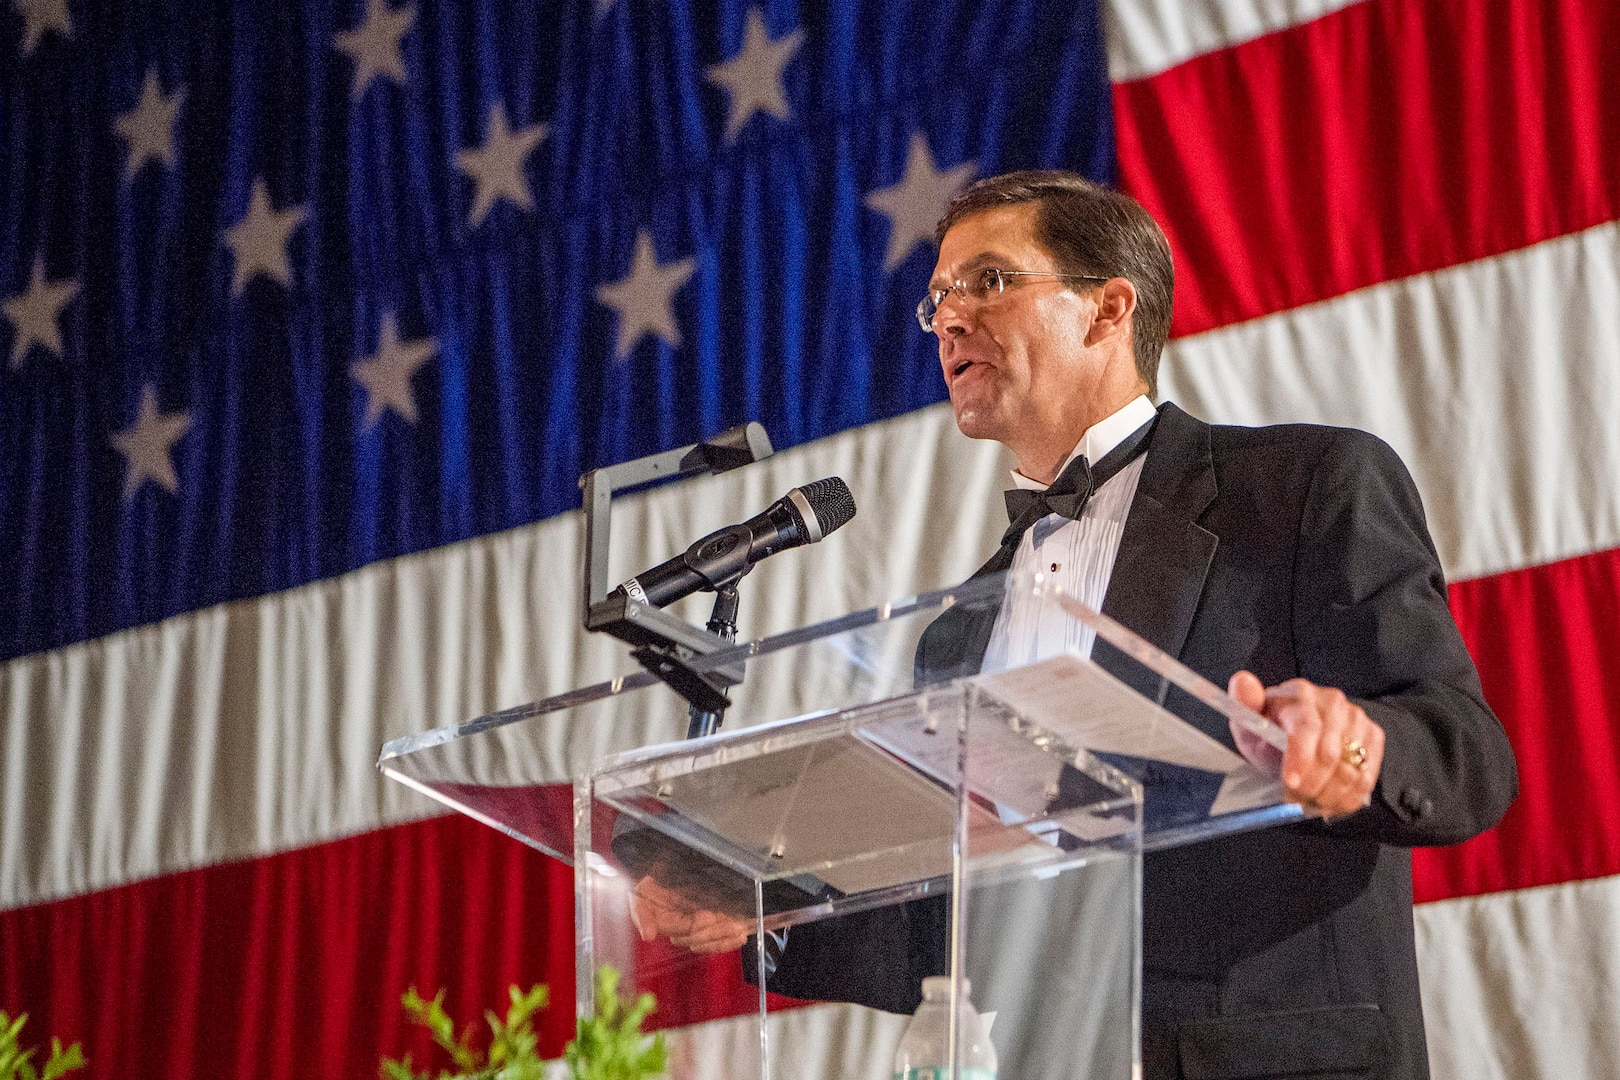 Former District of Columbia National Guardsman Dr. Mark T. Esper, who became the 27th Secretary of Defense in July, speaks at the District of Columbia National Guard's Military Ball May 5, 2018 in the DCNG Armory. Esper is a former DCNG Capital Guardian, having served in the Mobilization Augmentation Detachment 4, as a major, prior to and following the Sept. 11 attacks